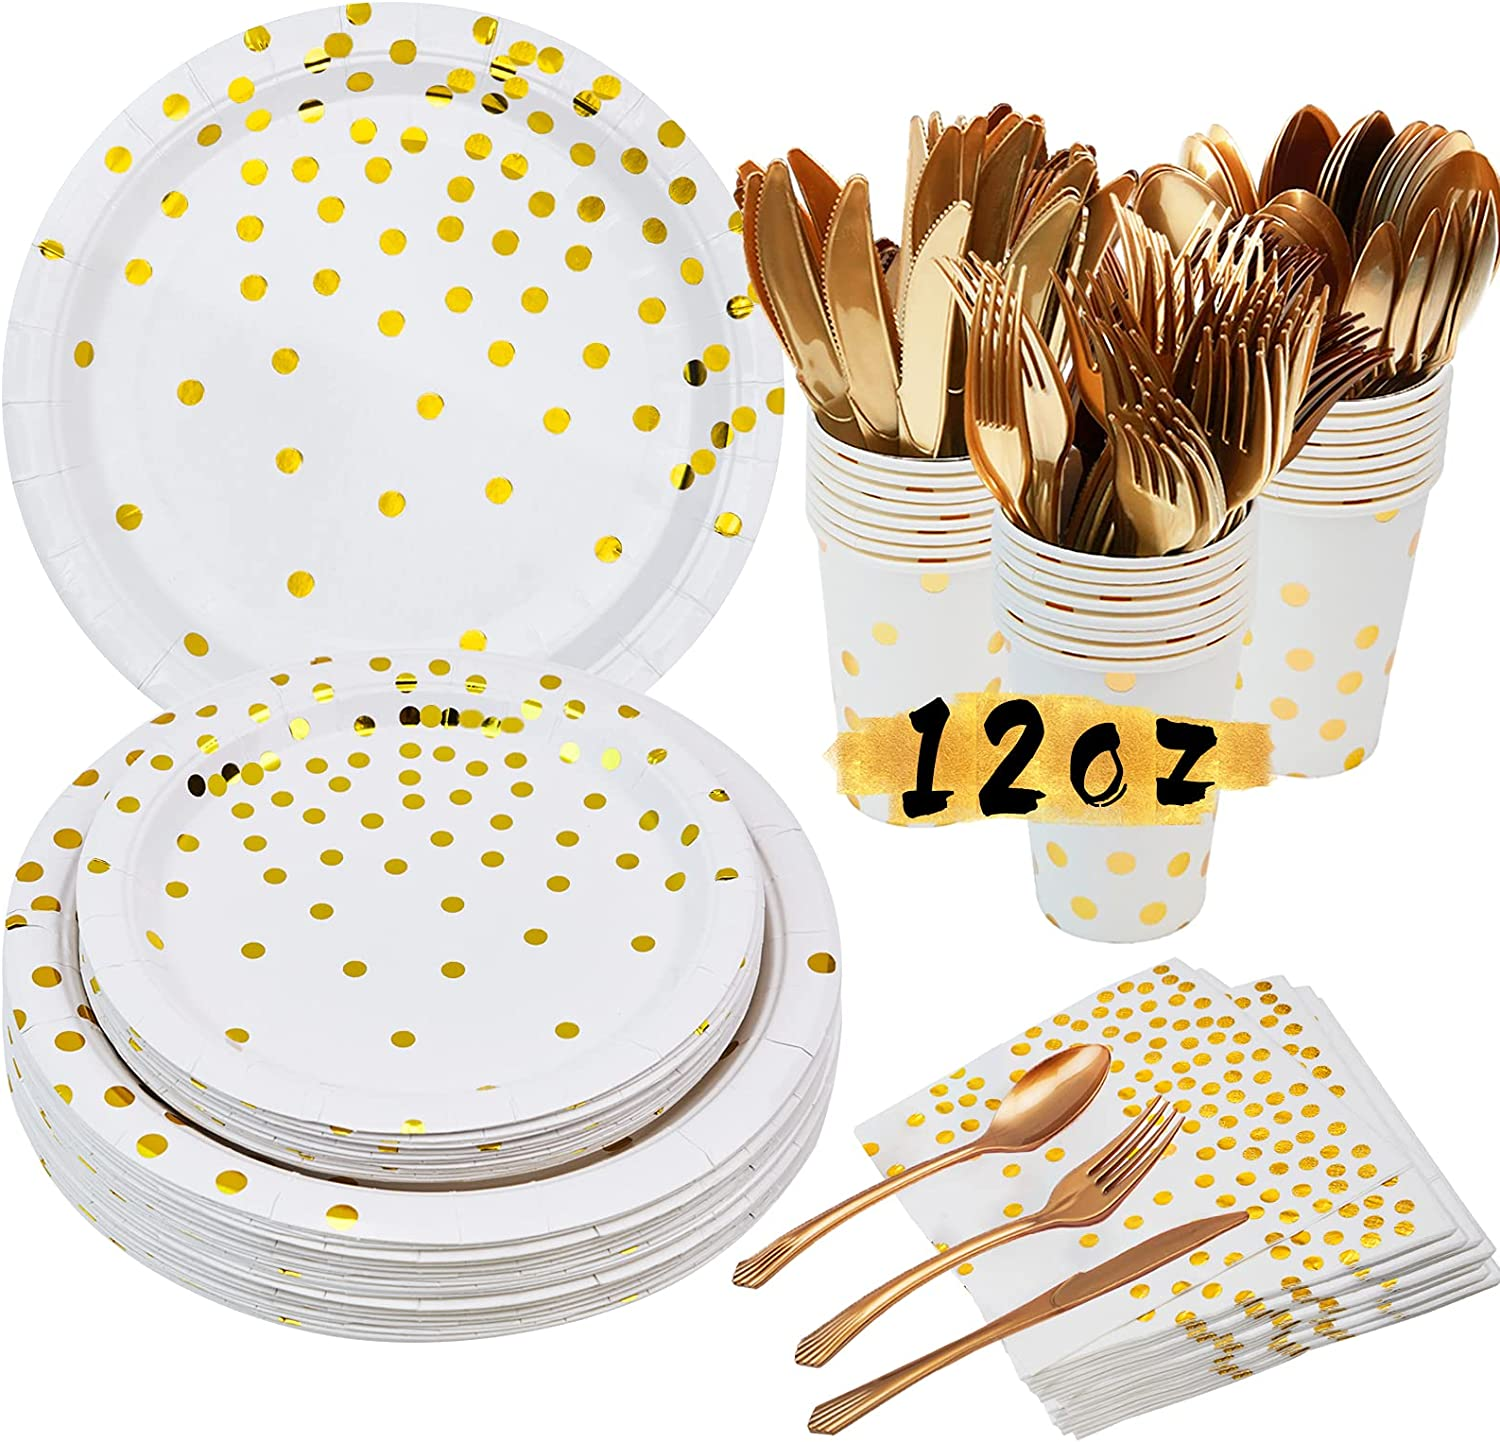 White Gold Party Supplies Set -175 Piece Disposable Party Paper Tableware With Paper Plates, Napkins,12 oz Cups,Forks,Knives,Spoons-Dinnerware Set For Birthday Wedding Baby Shower Party Decoration